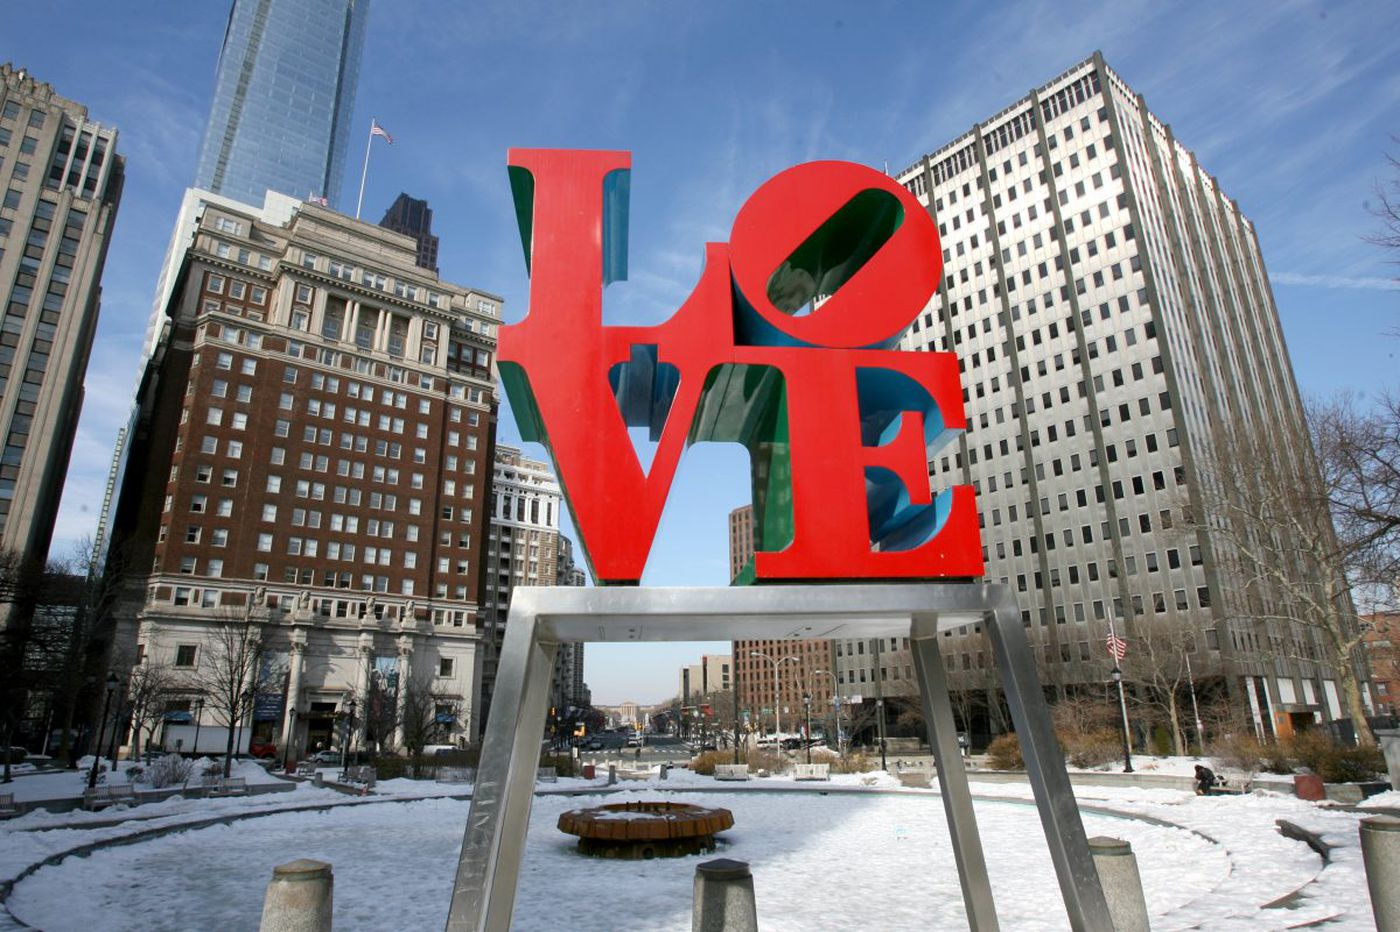 LOVE sculpture to return in time for Valentine's Day